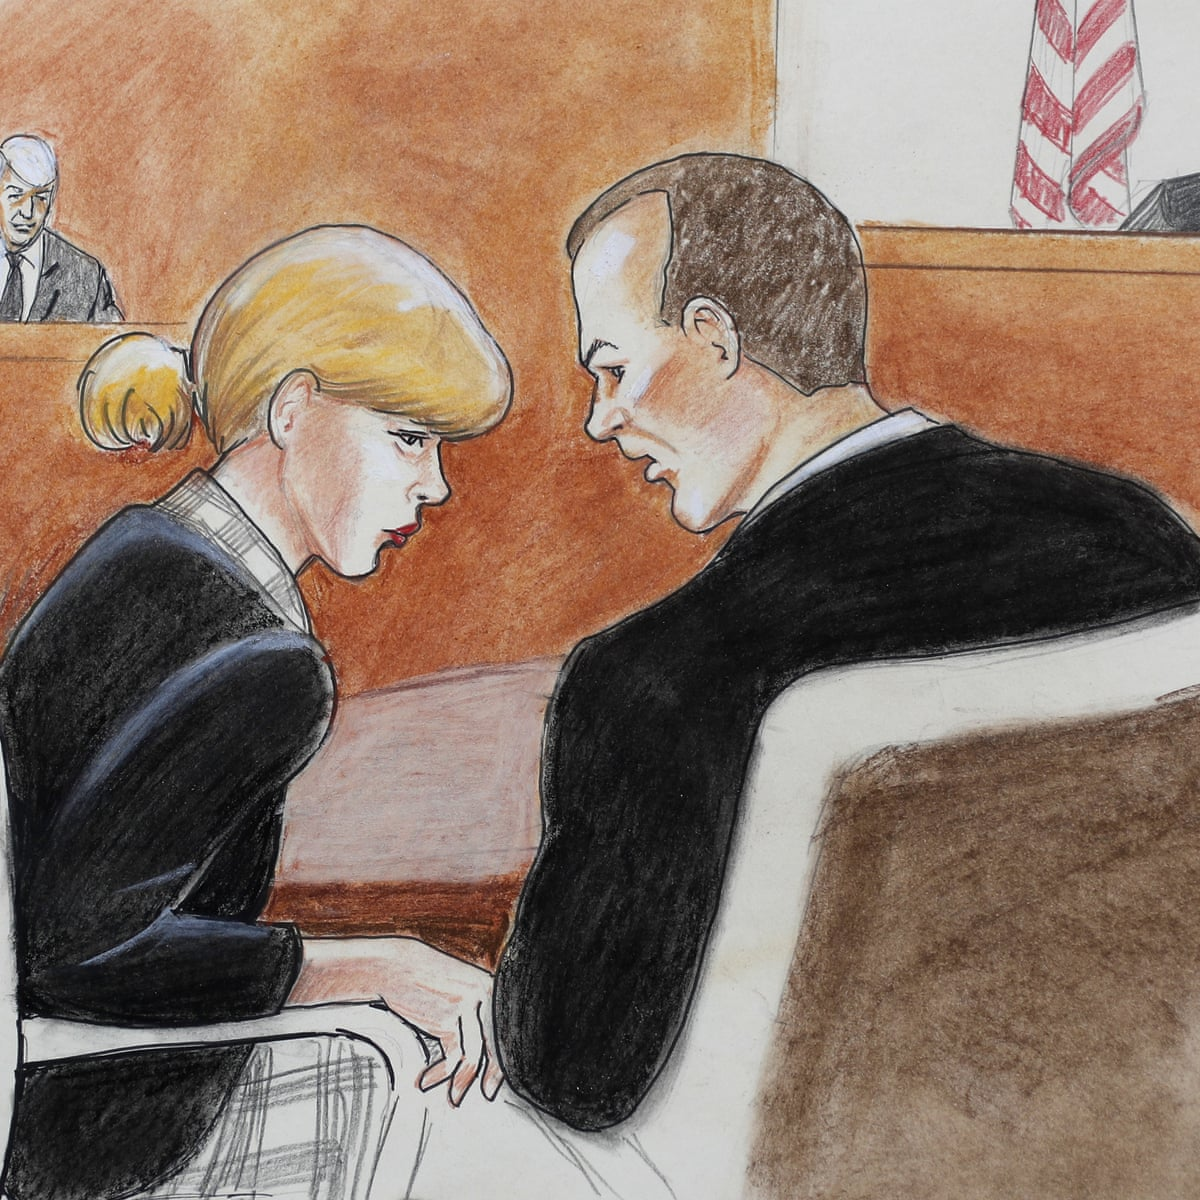 Taylor Swift Bodyguard Tells Court He Saw Dj Reach Under Singer S Skirt Taylor Swift The Guardian